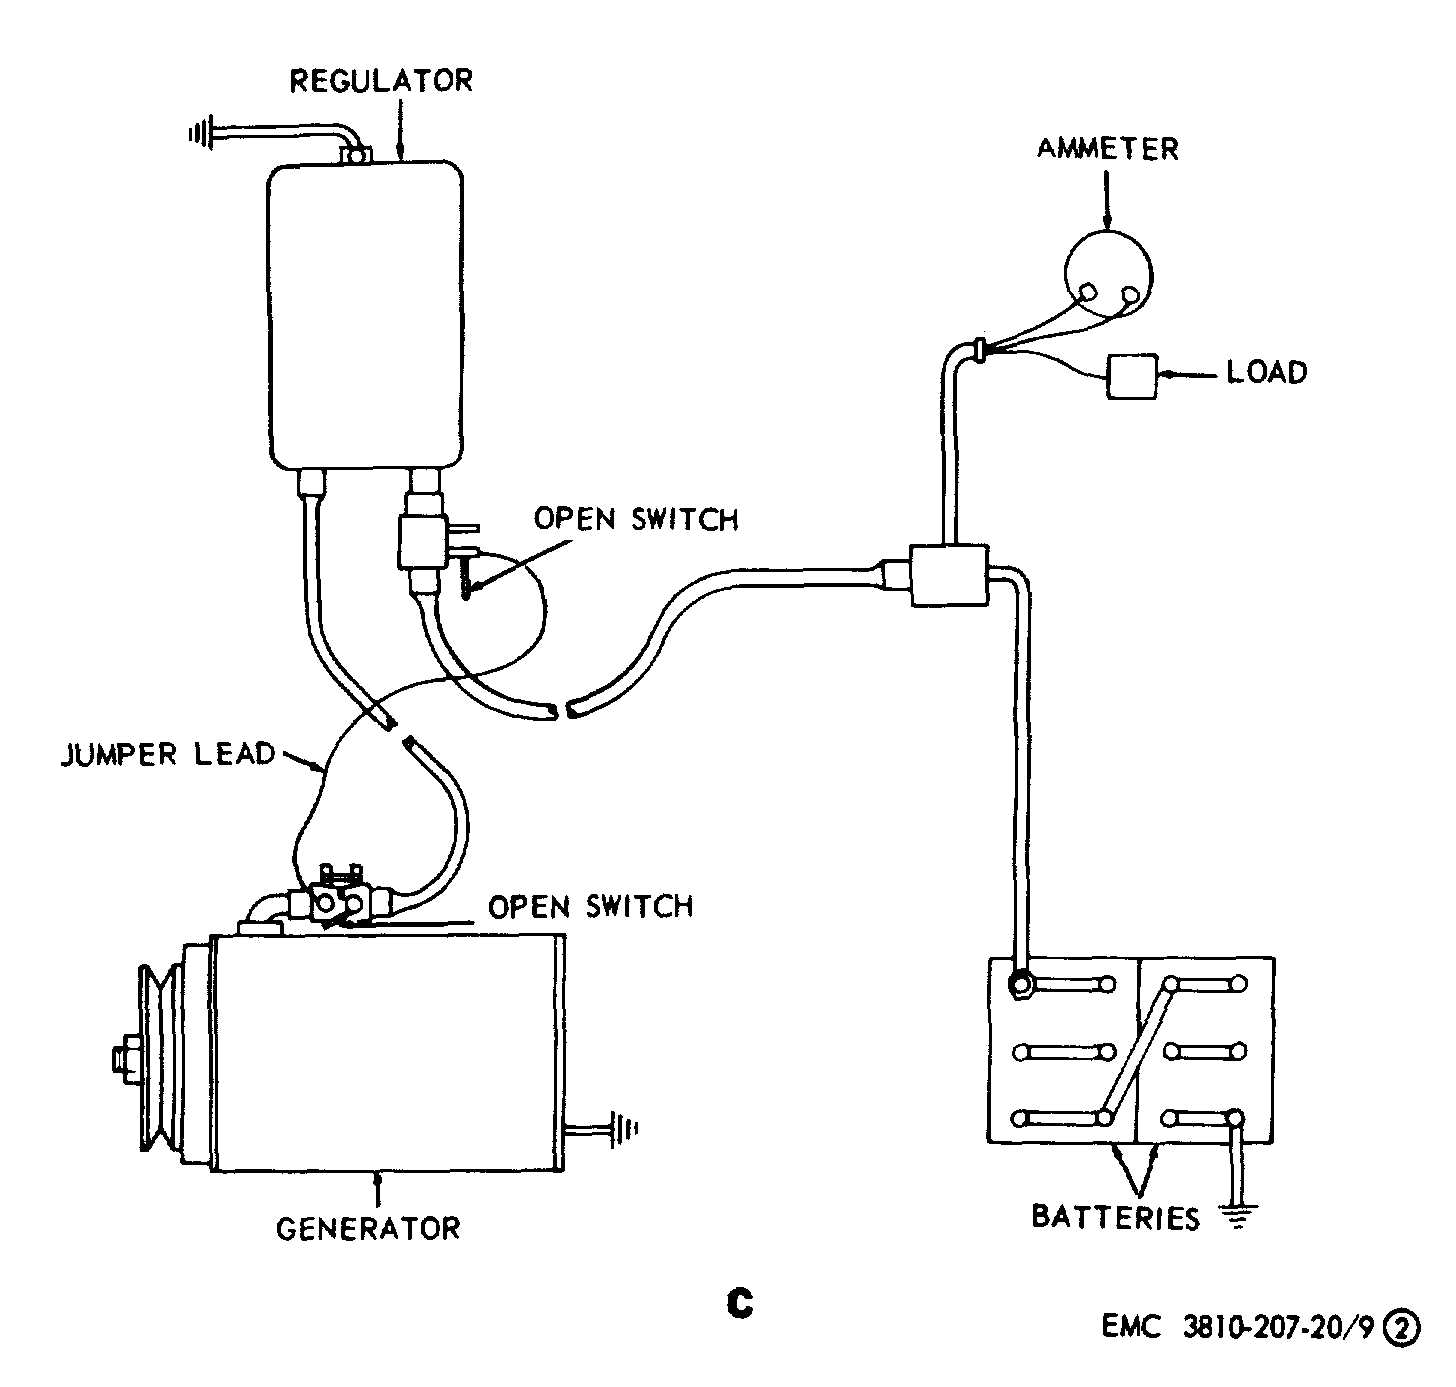 Figure 9  Generator Regulator Removal  Adjustment  And Test Wiring Diagram - Cont